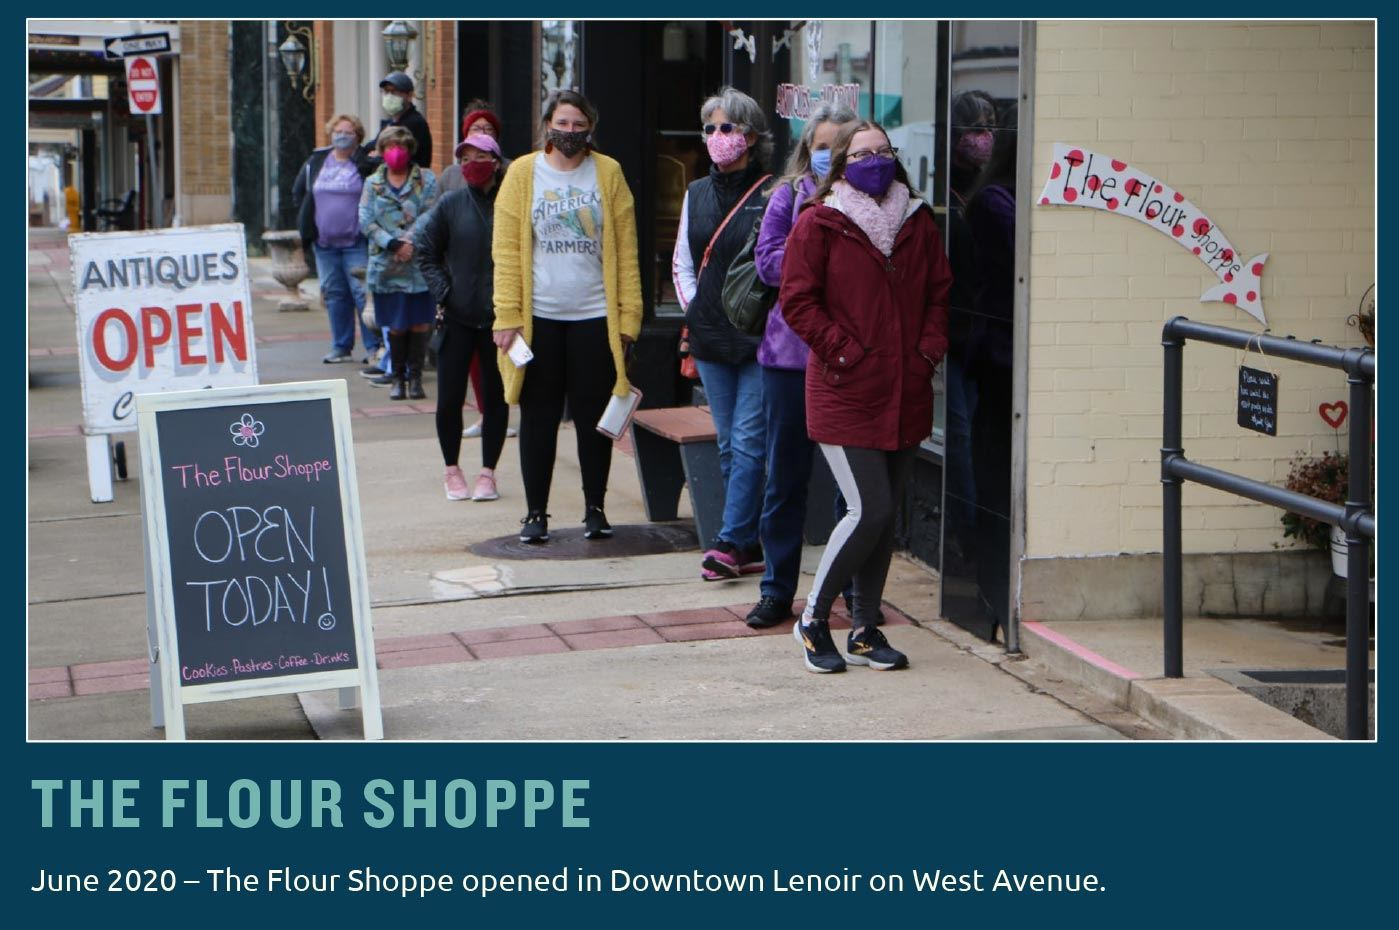 A slide showing people lined up outside The Flour Shoppe in Downtown Lenoir